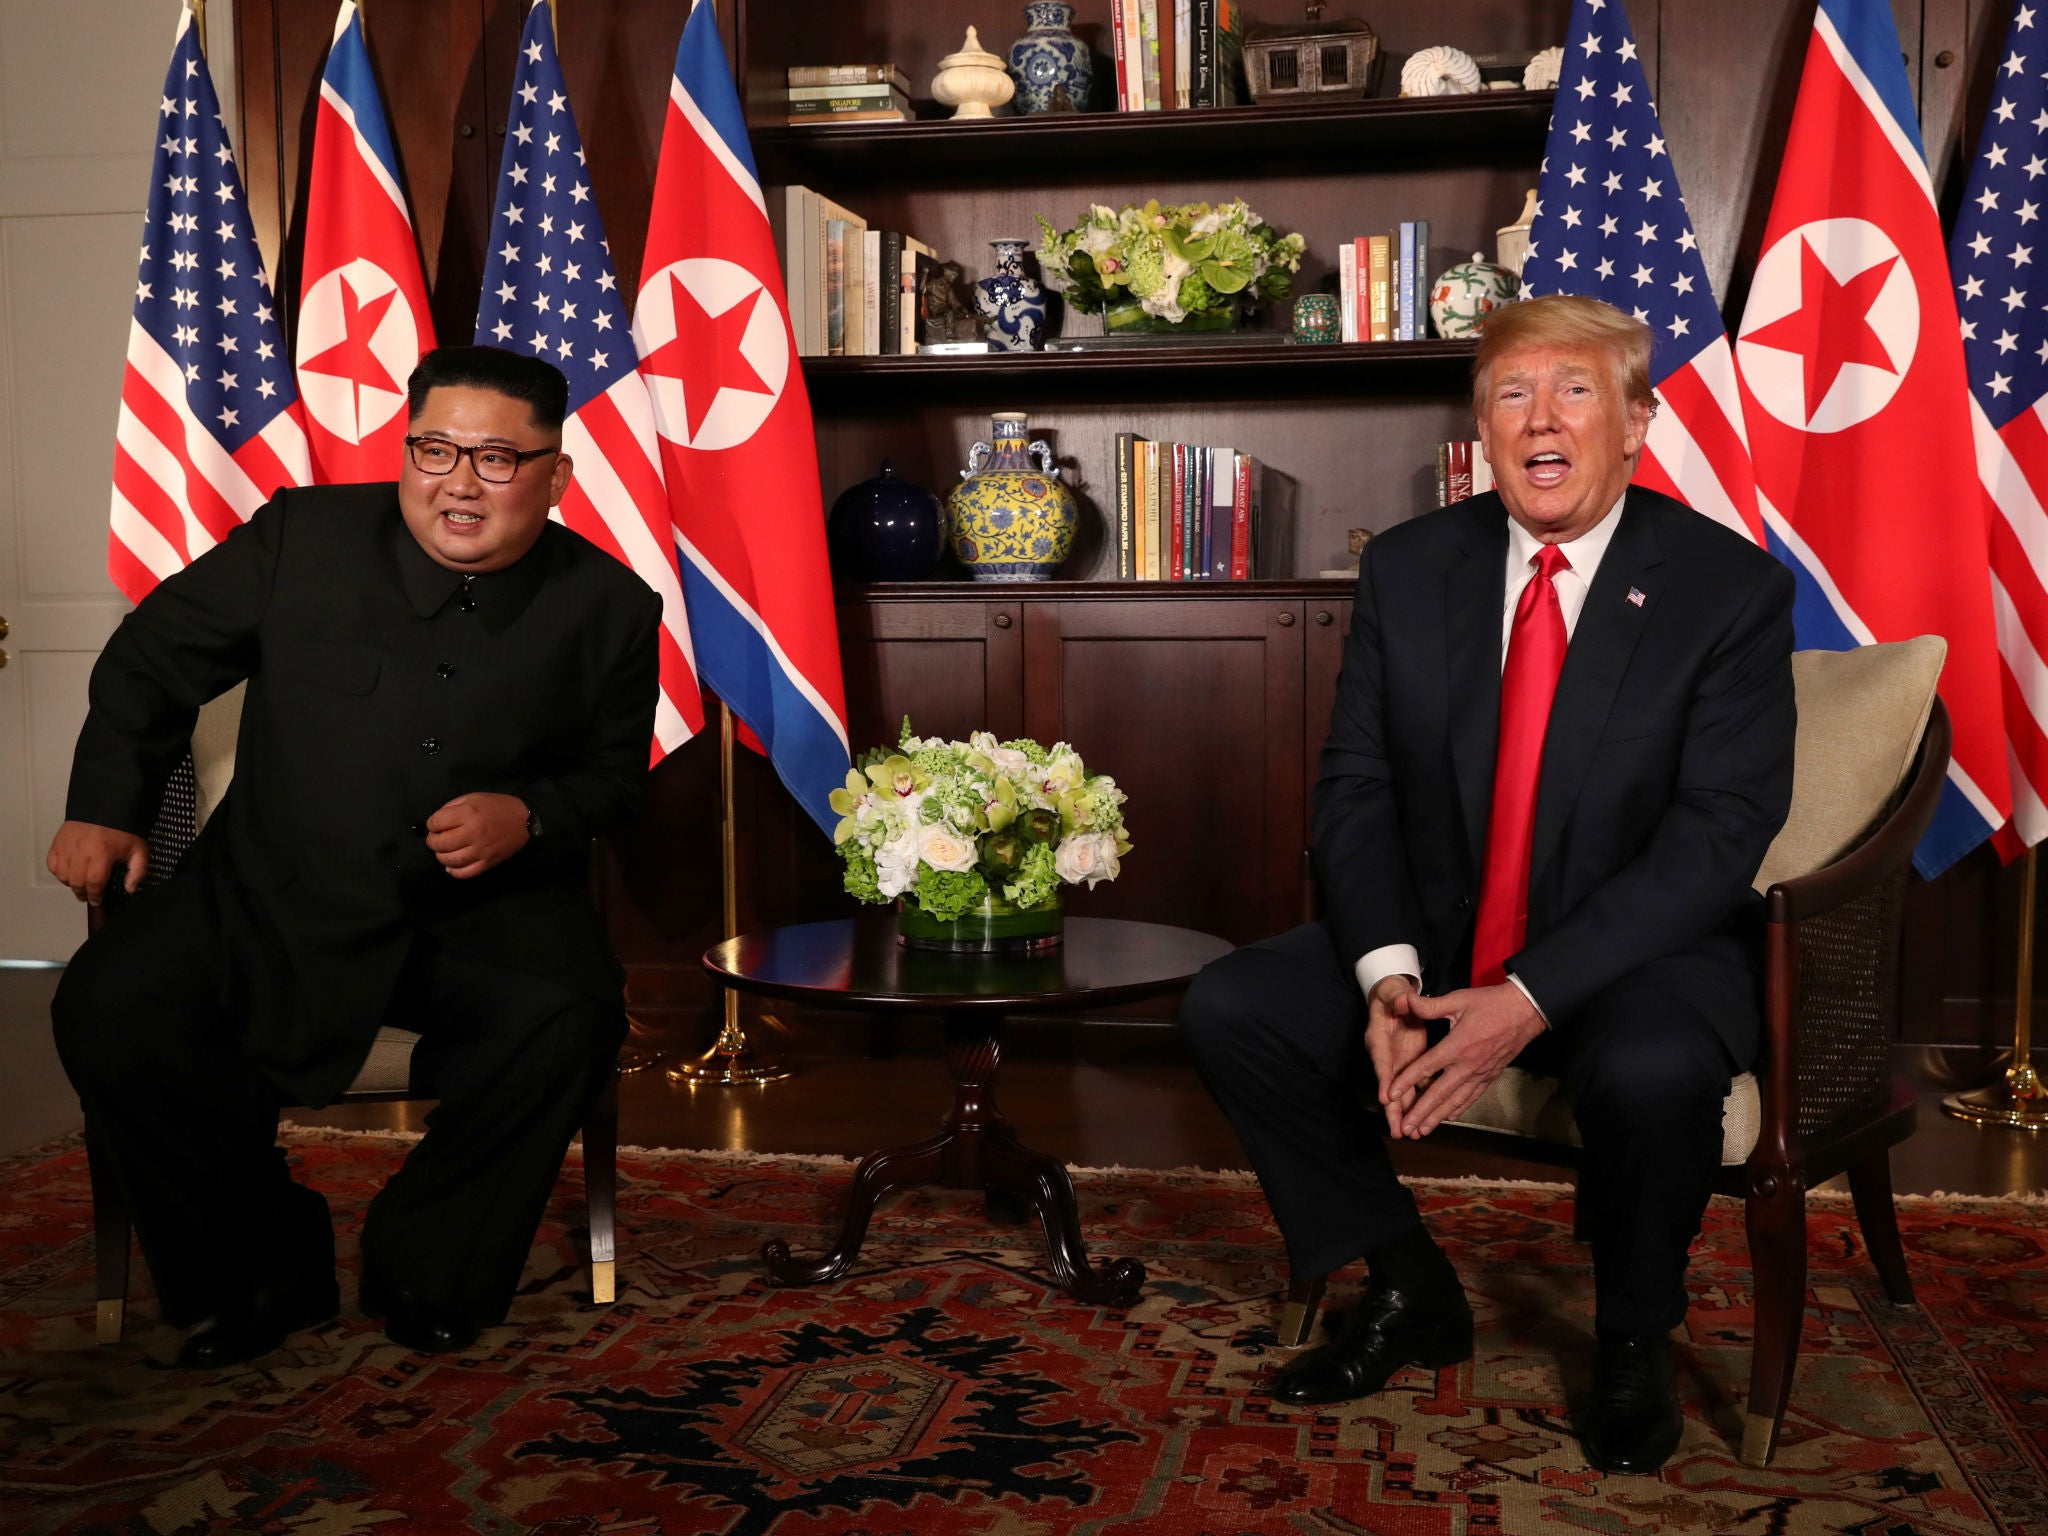 Trump-Kim meeting: US president says 'we will have a terrific relationship' as he meets North Korea leader